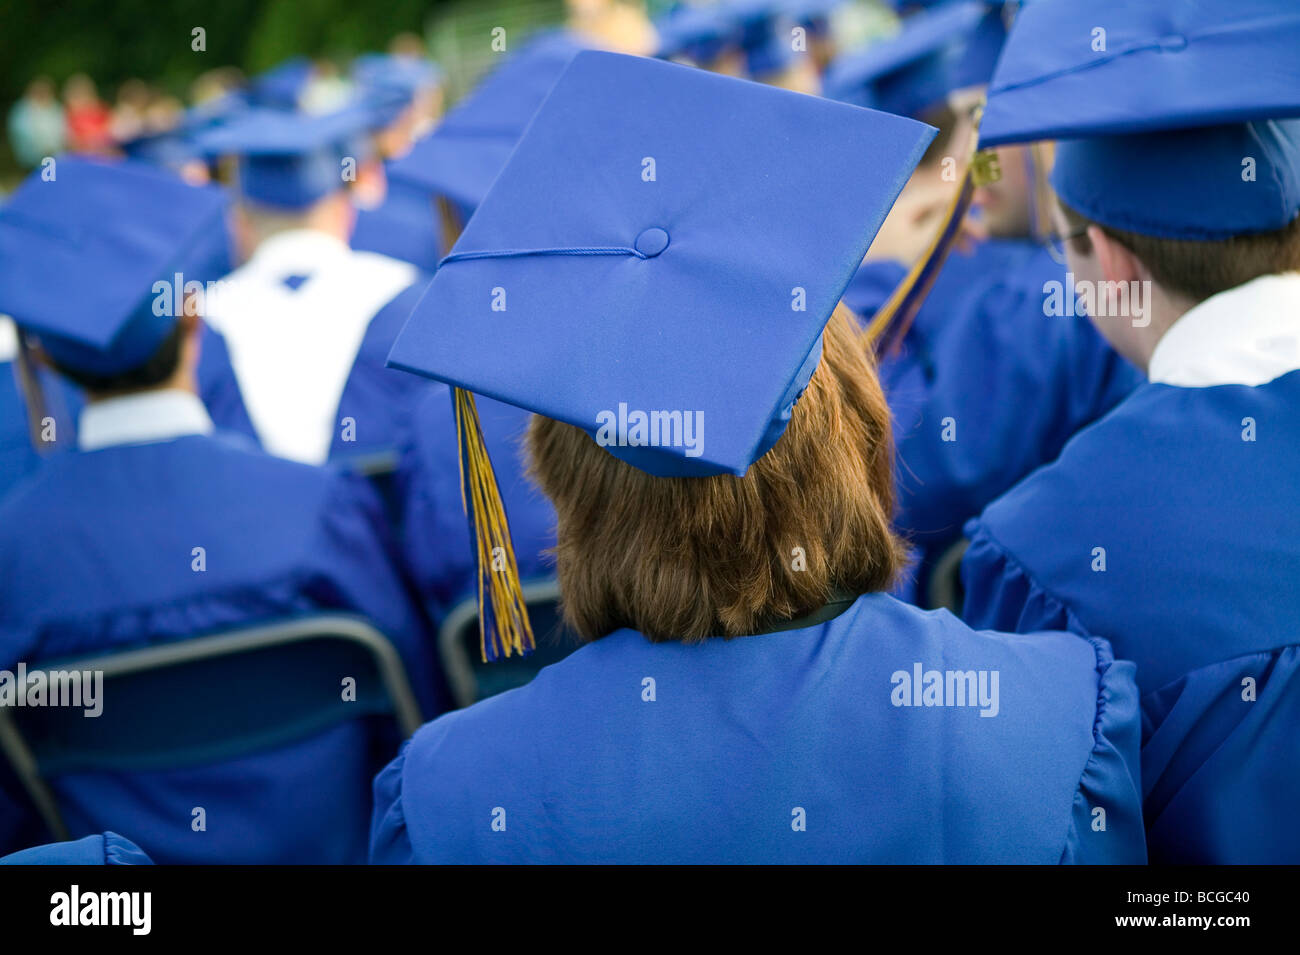 High School students wearing blue and gold cap and gown attend Graduation  Ceremony in USA efab39d529f